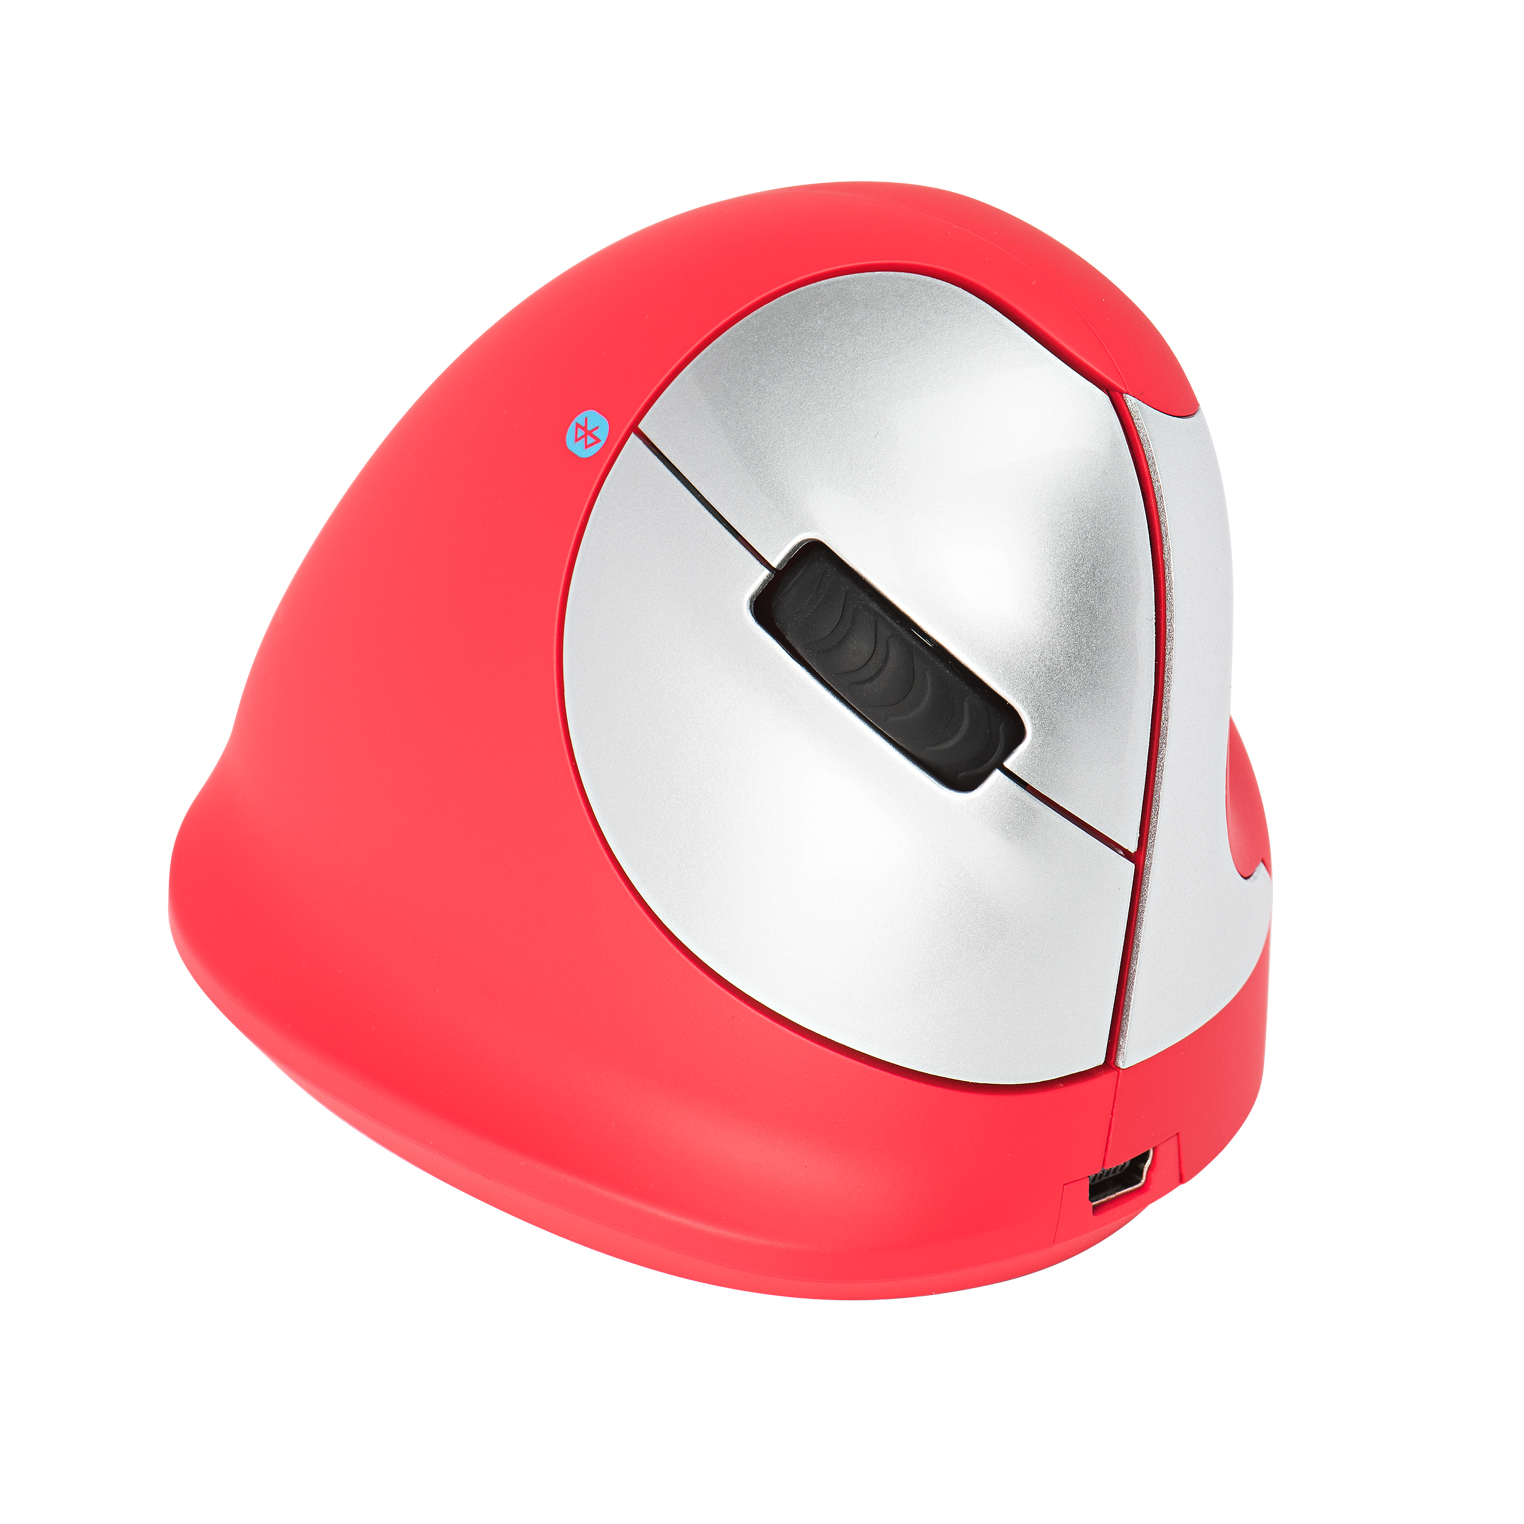 R-GO HE ERGONOMIC MOUSE MEDIUM RIGHT HAND BLUETOOTH RED  IN